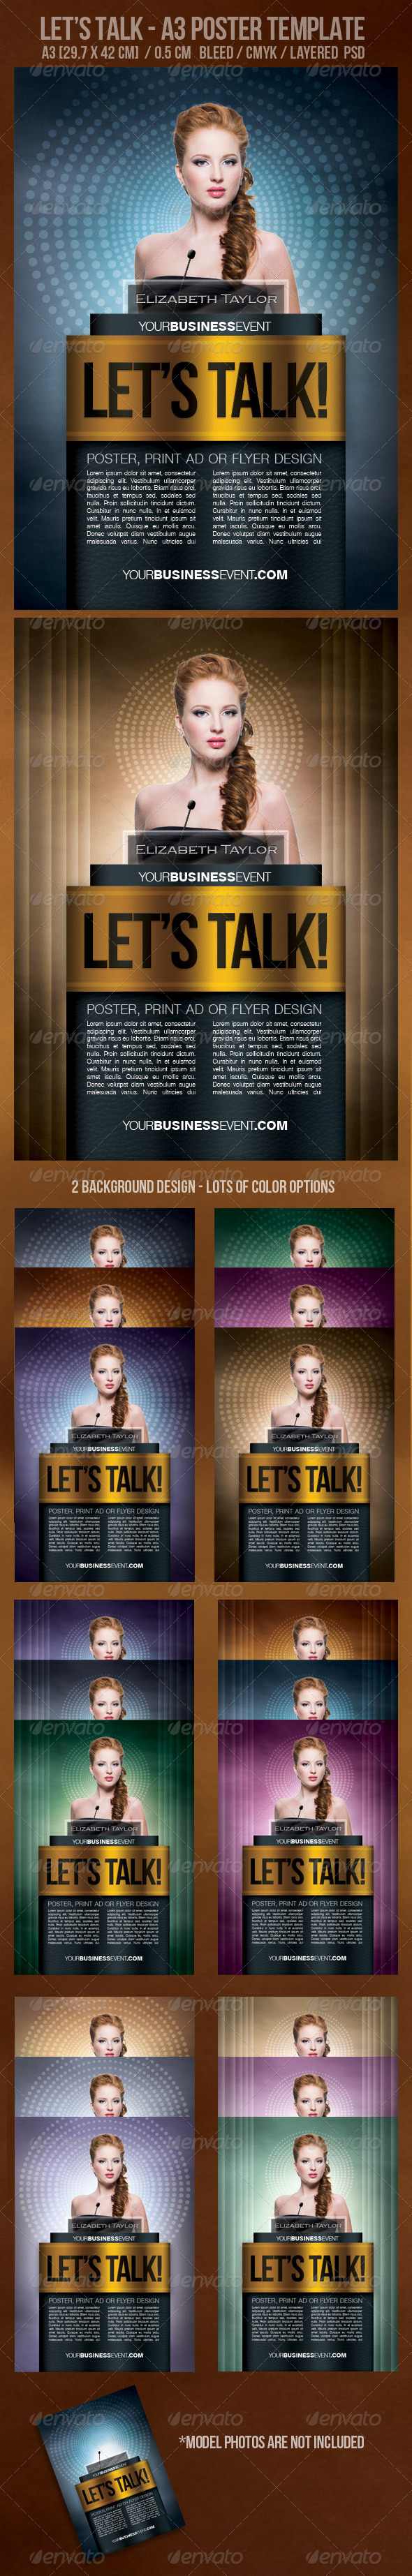 Let's Talk! A3 Poster Design Template. - Clubs & Parties Events